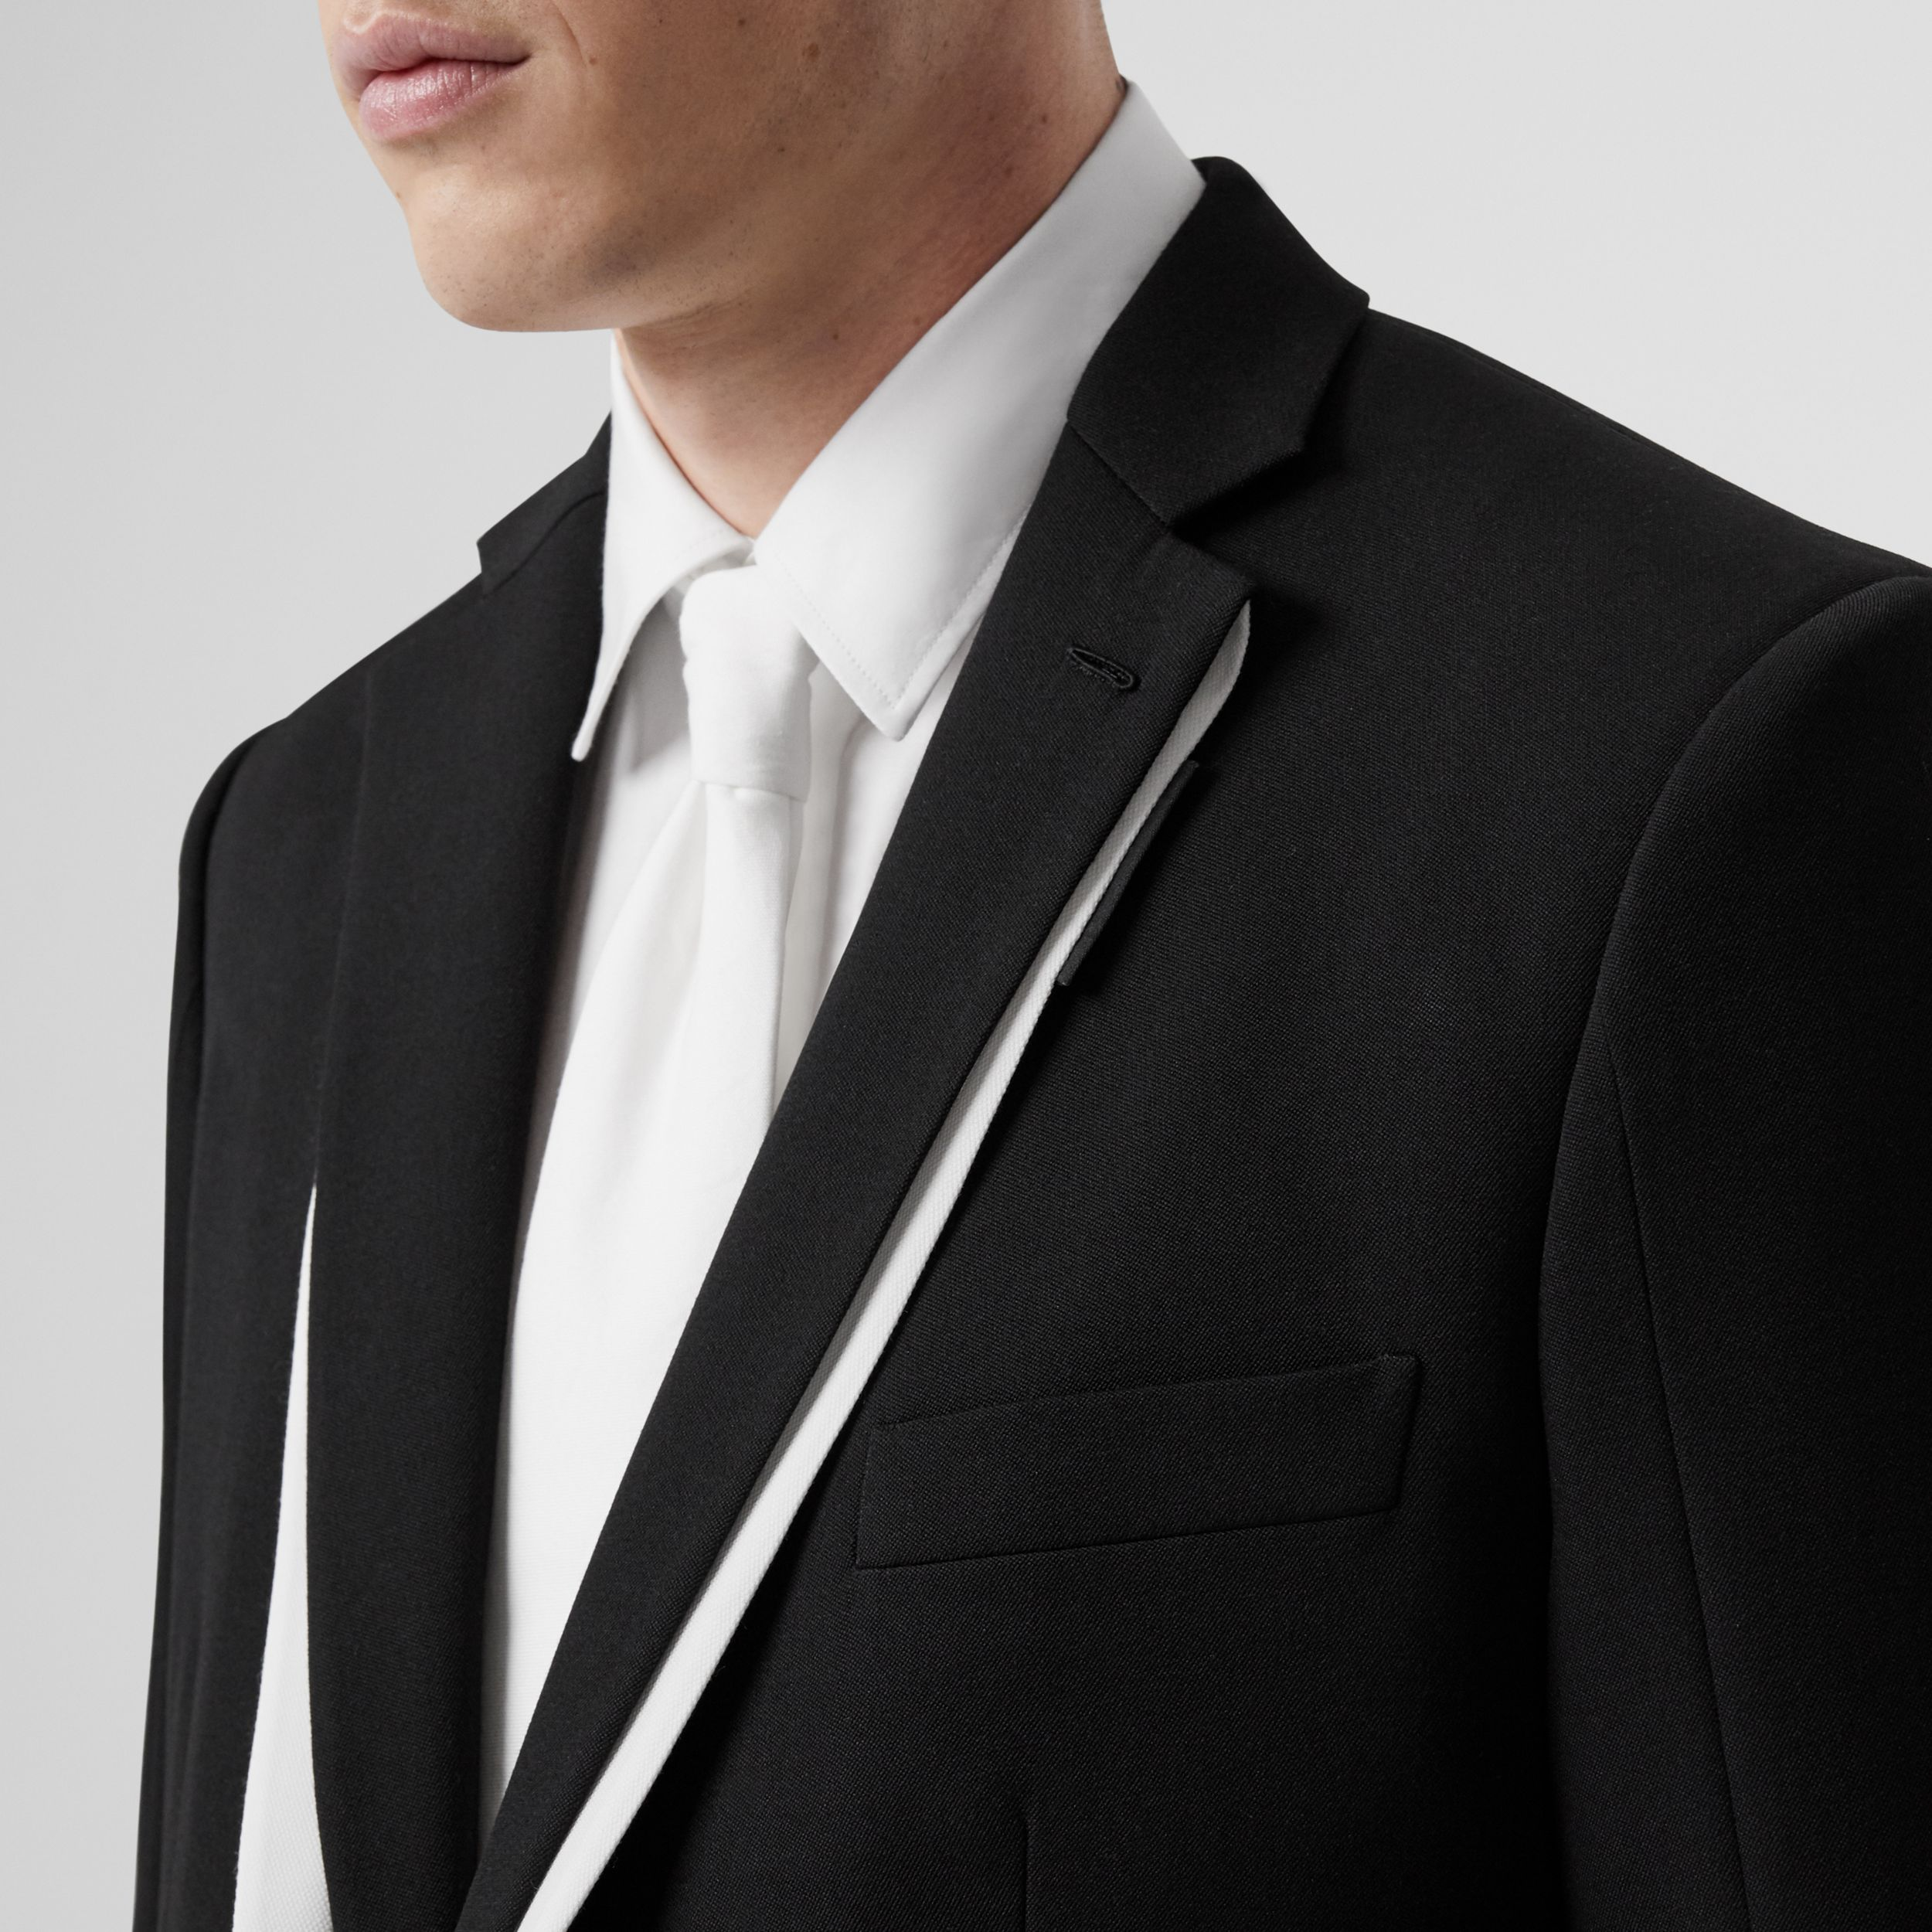 English Fit Double-front Detail Wool Tailored Jacket in Black - Men | Burberry United Kingdom - 2